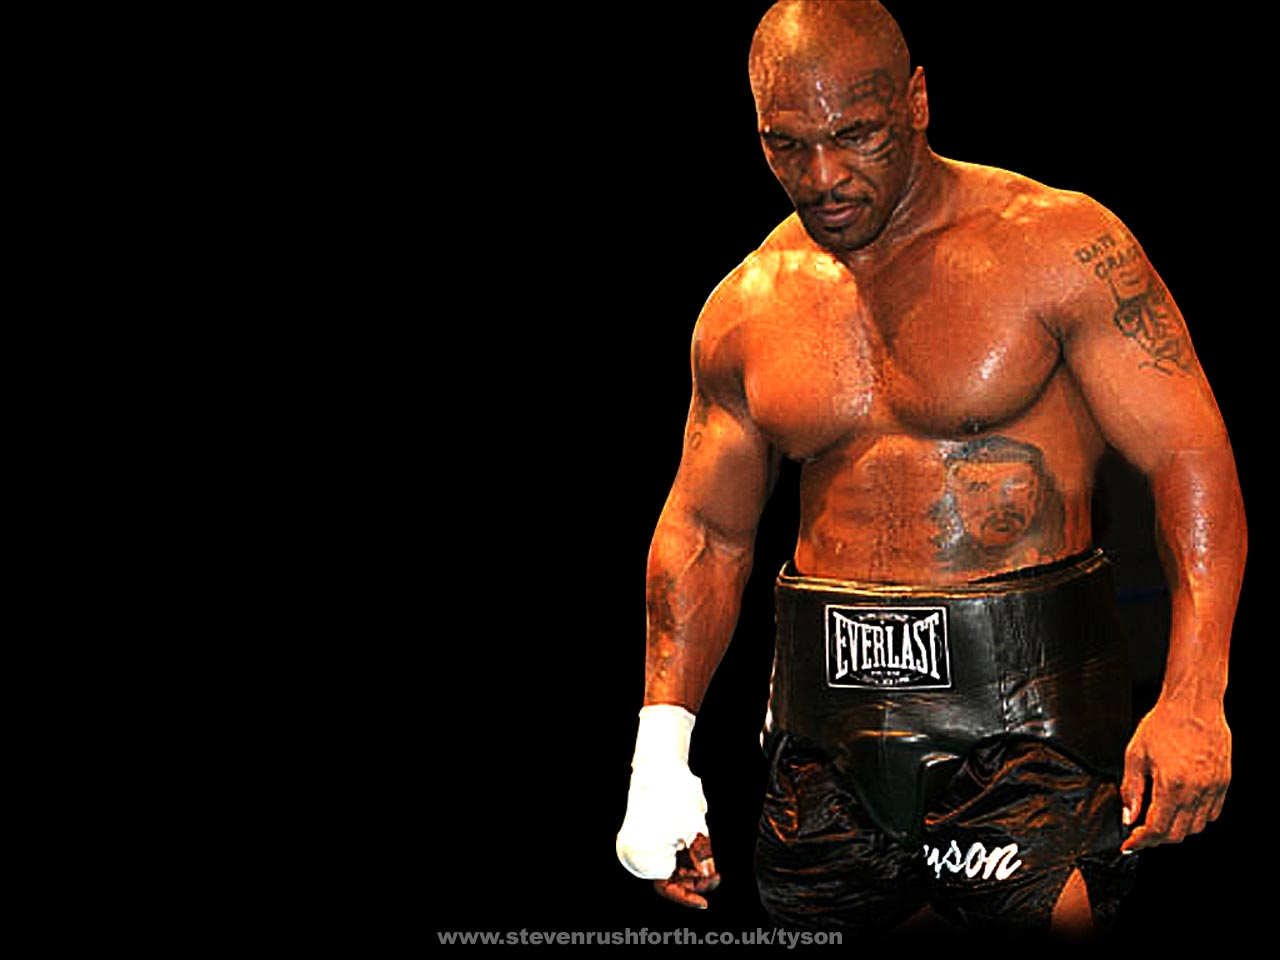 1280x960 - Mike Tyson Wallpapers 25